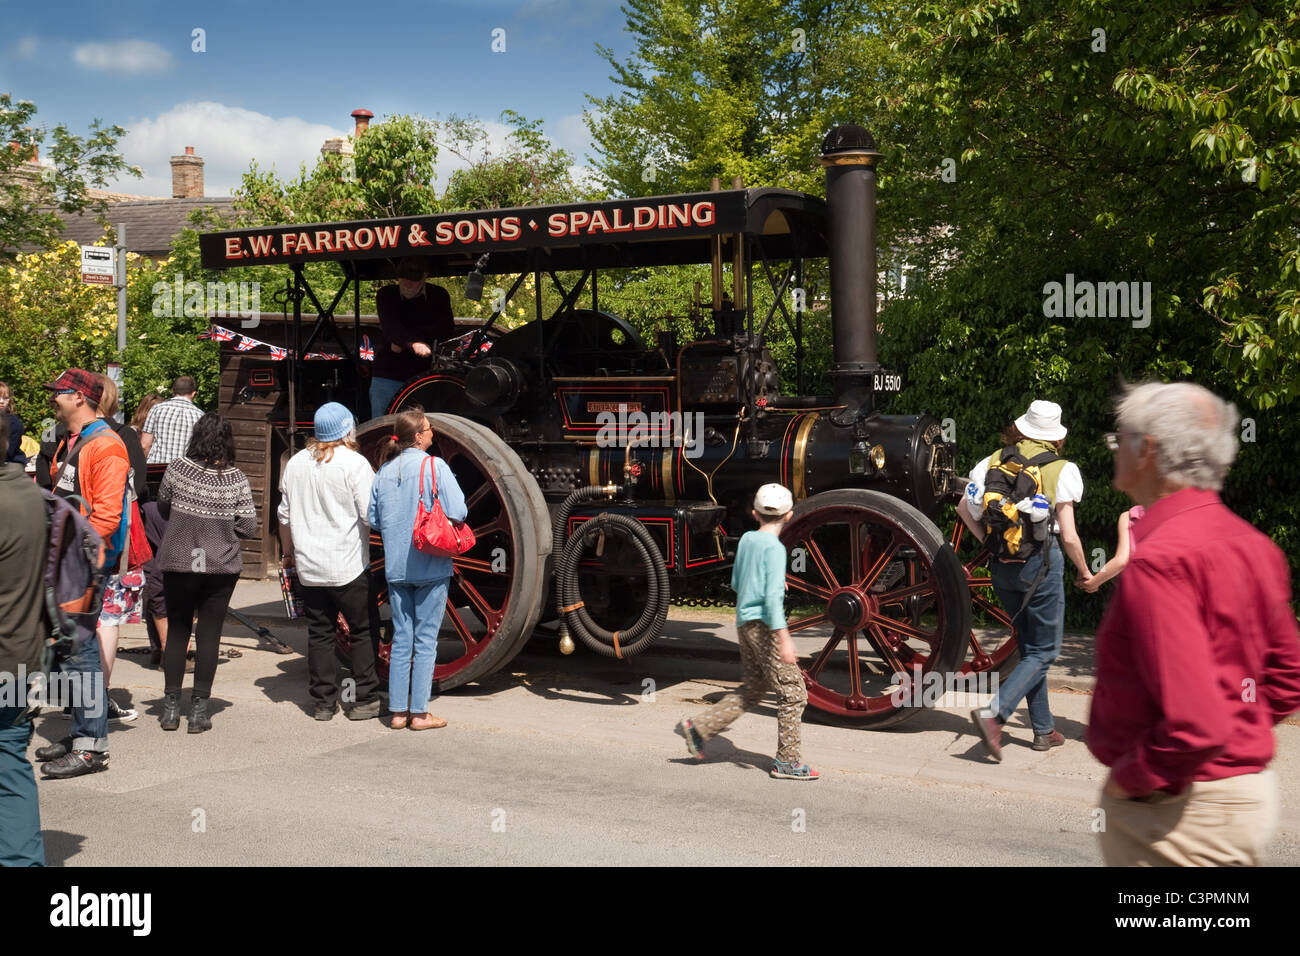 People looking at a Traction Engine, Reach village fair, Reach, Cambridgeshire UK - Stock Image